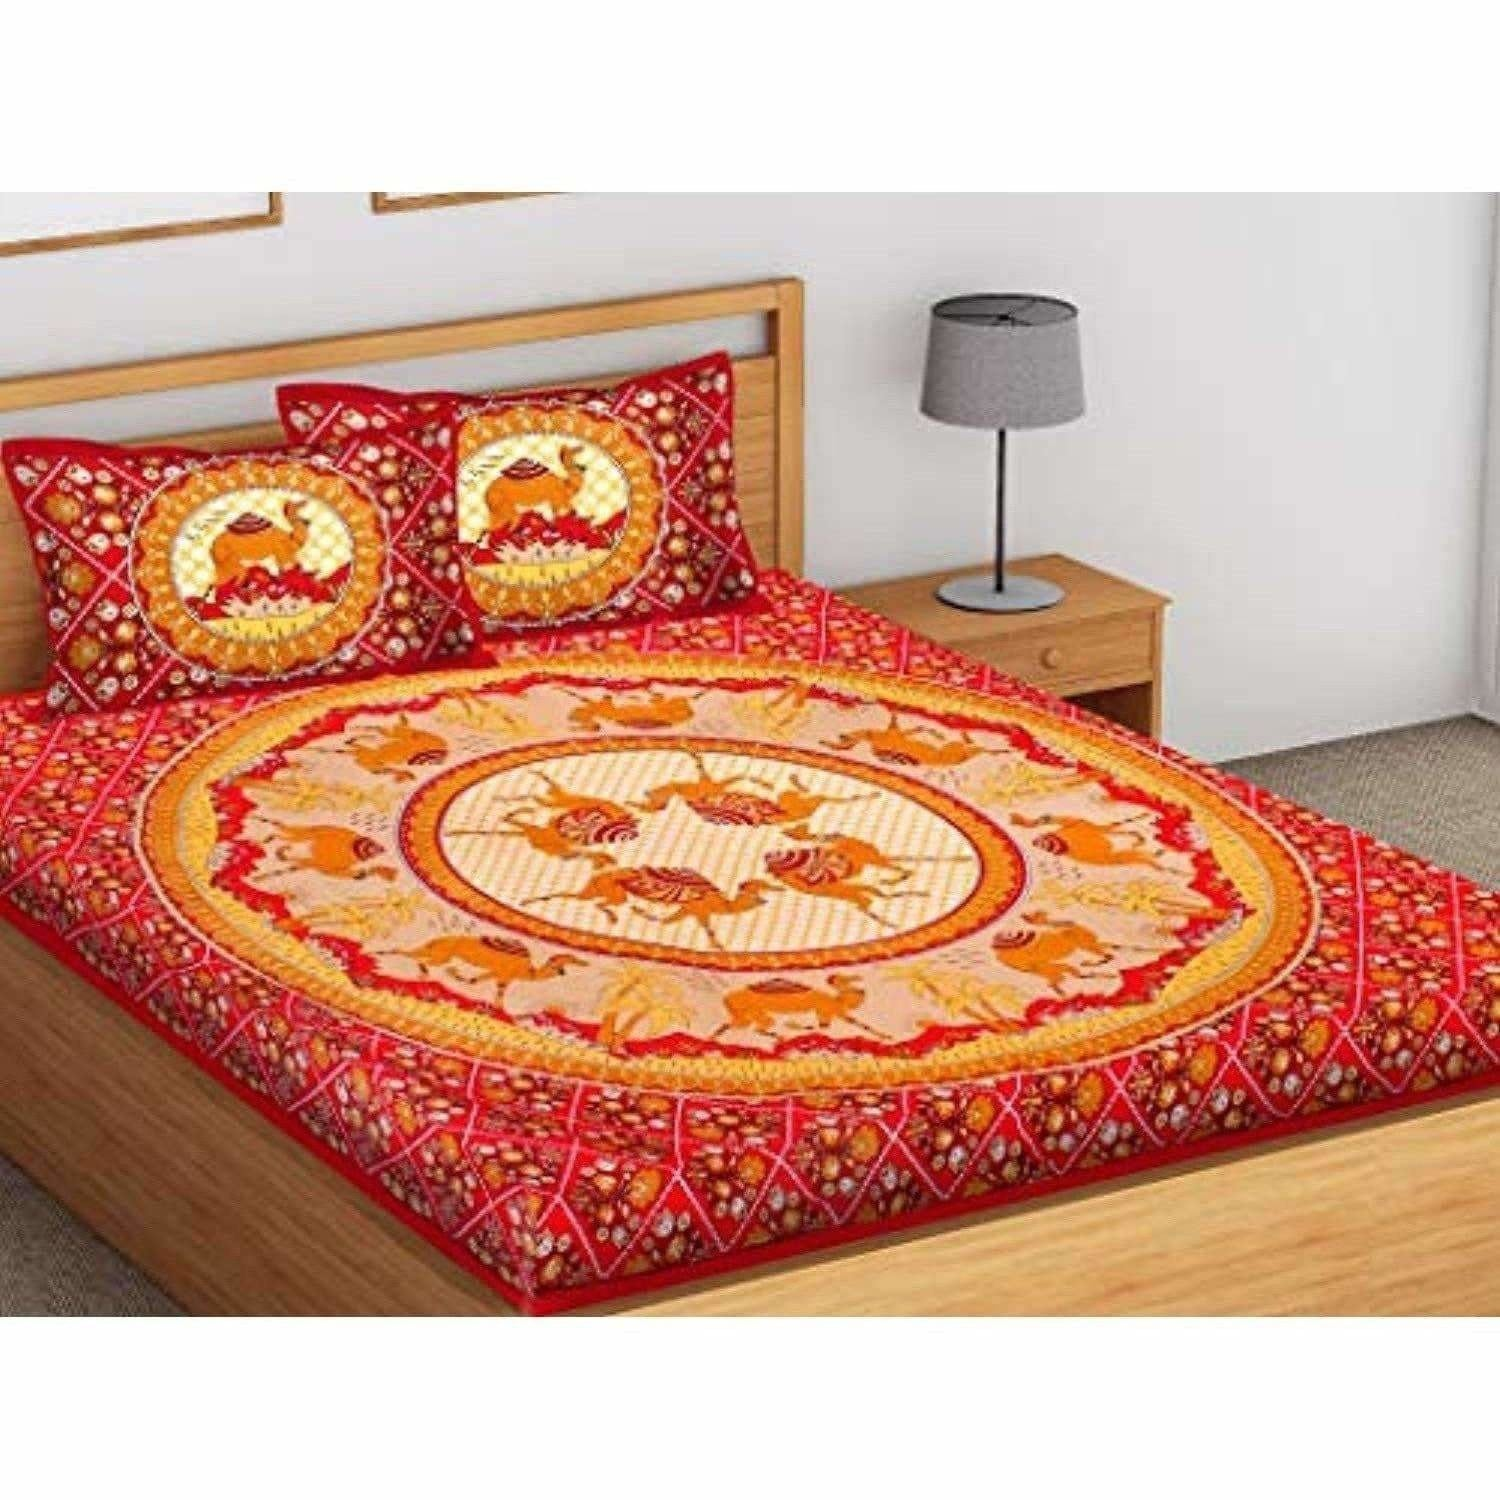 Printed Cotton King Size for Double Bedsheet with 2 Pillow Covers Red Color